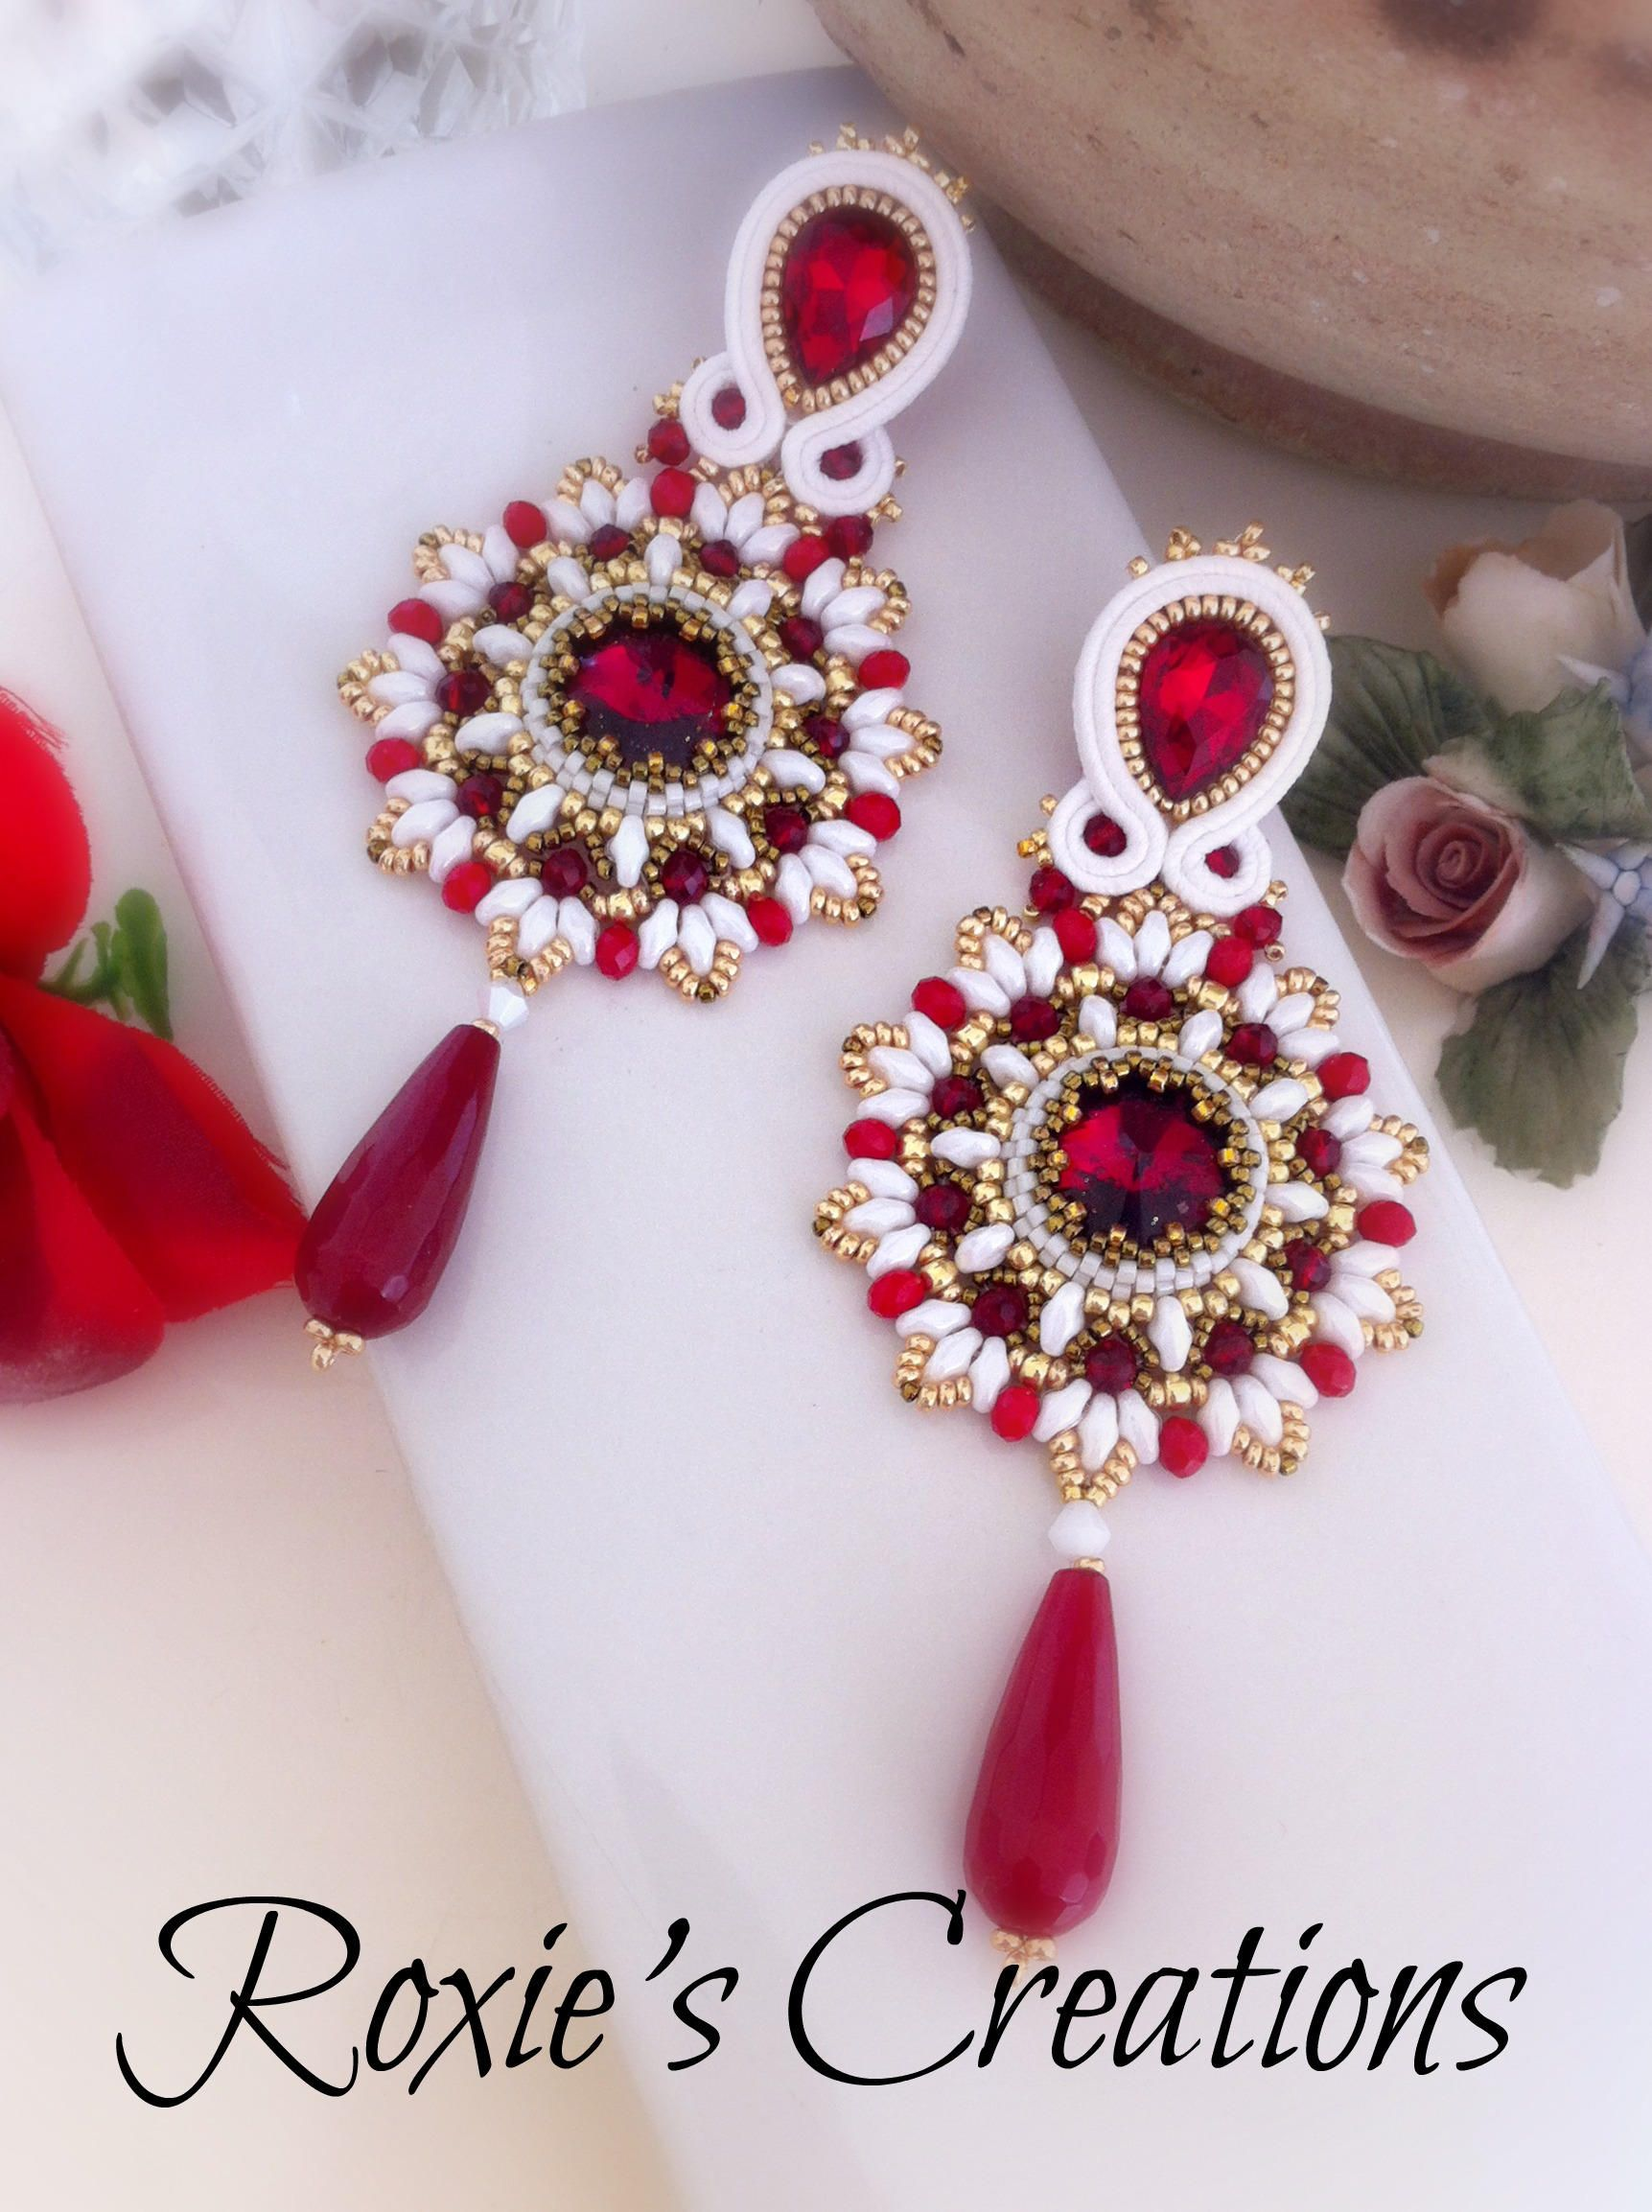 Di Mano In Mano Espinasse red earrings, white earrings, long earrings, red agate, red